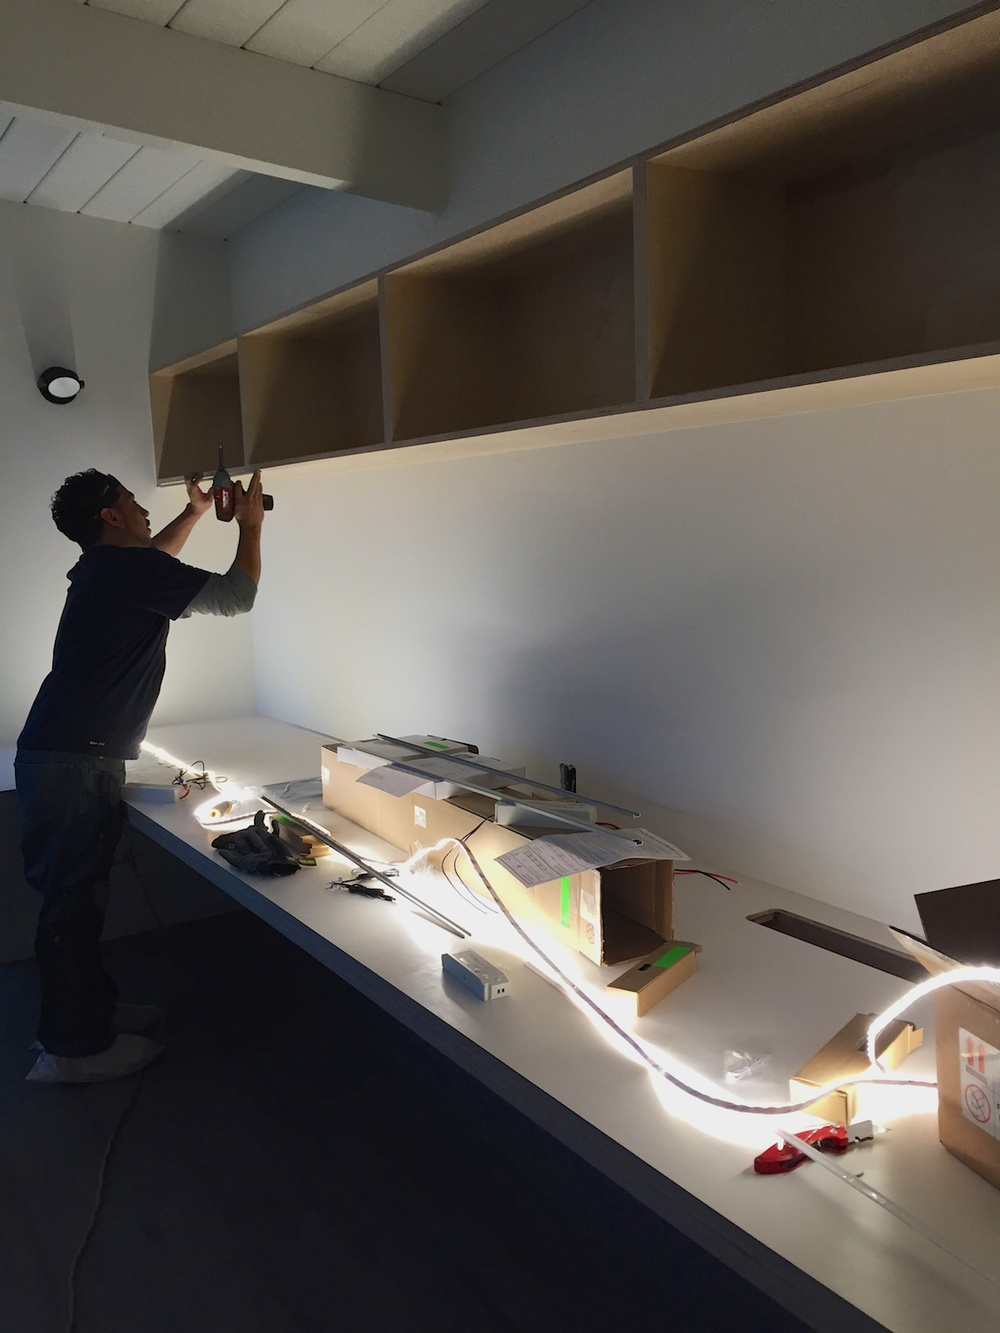 Installing high output LED strip light at upper office shelving